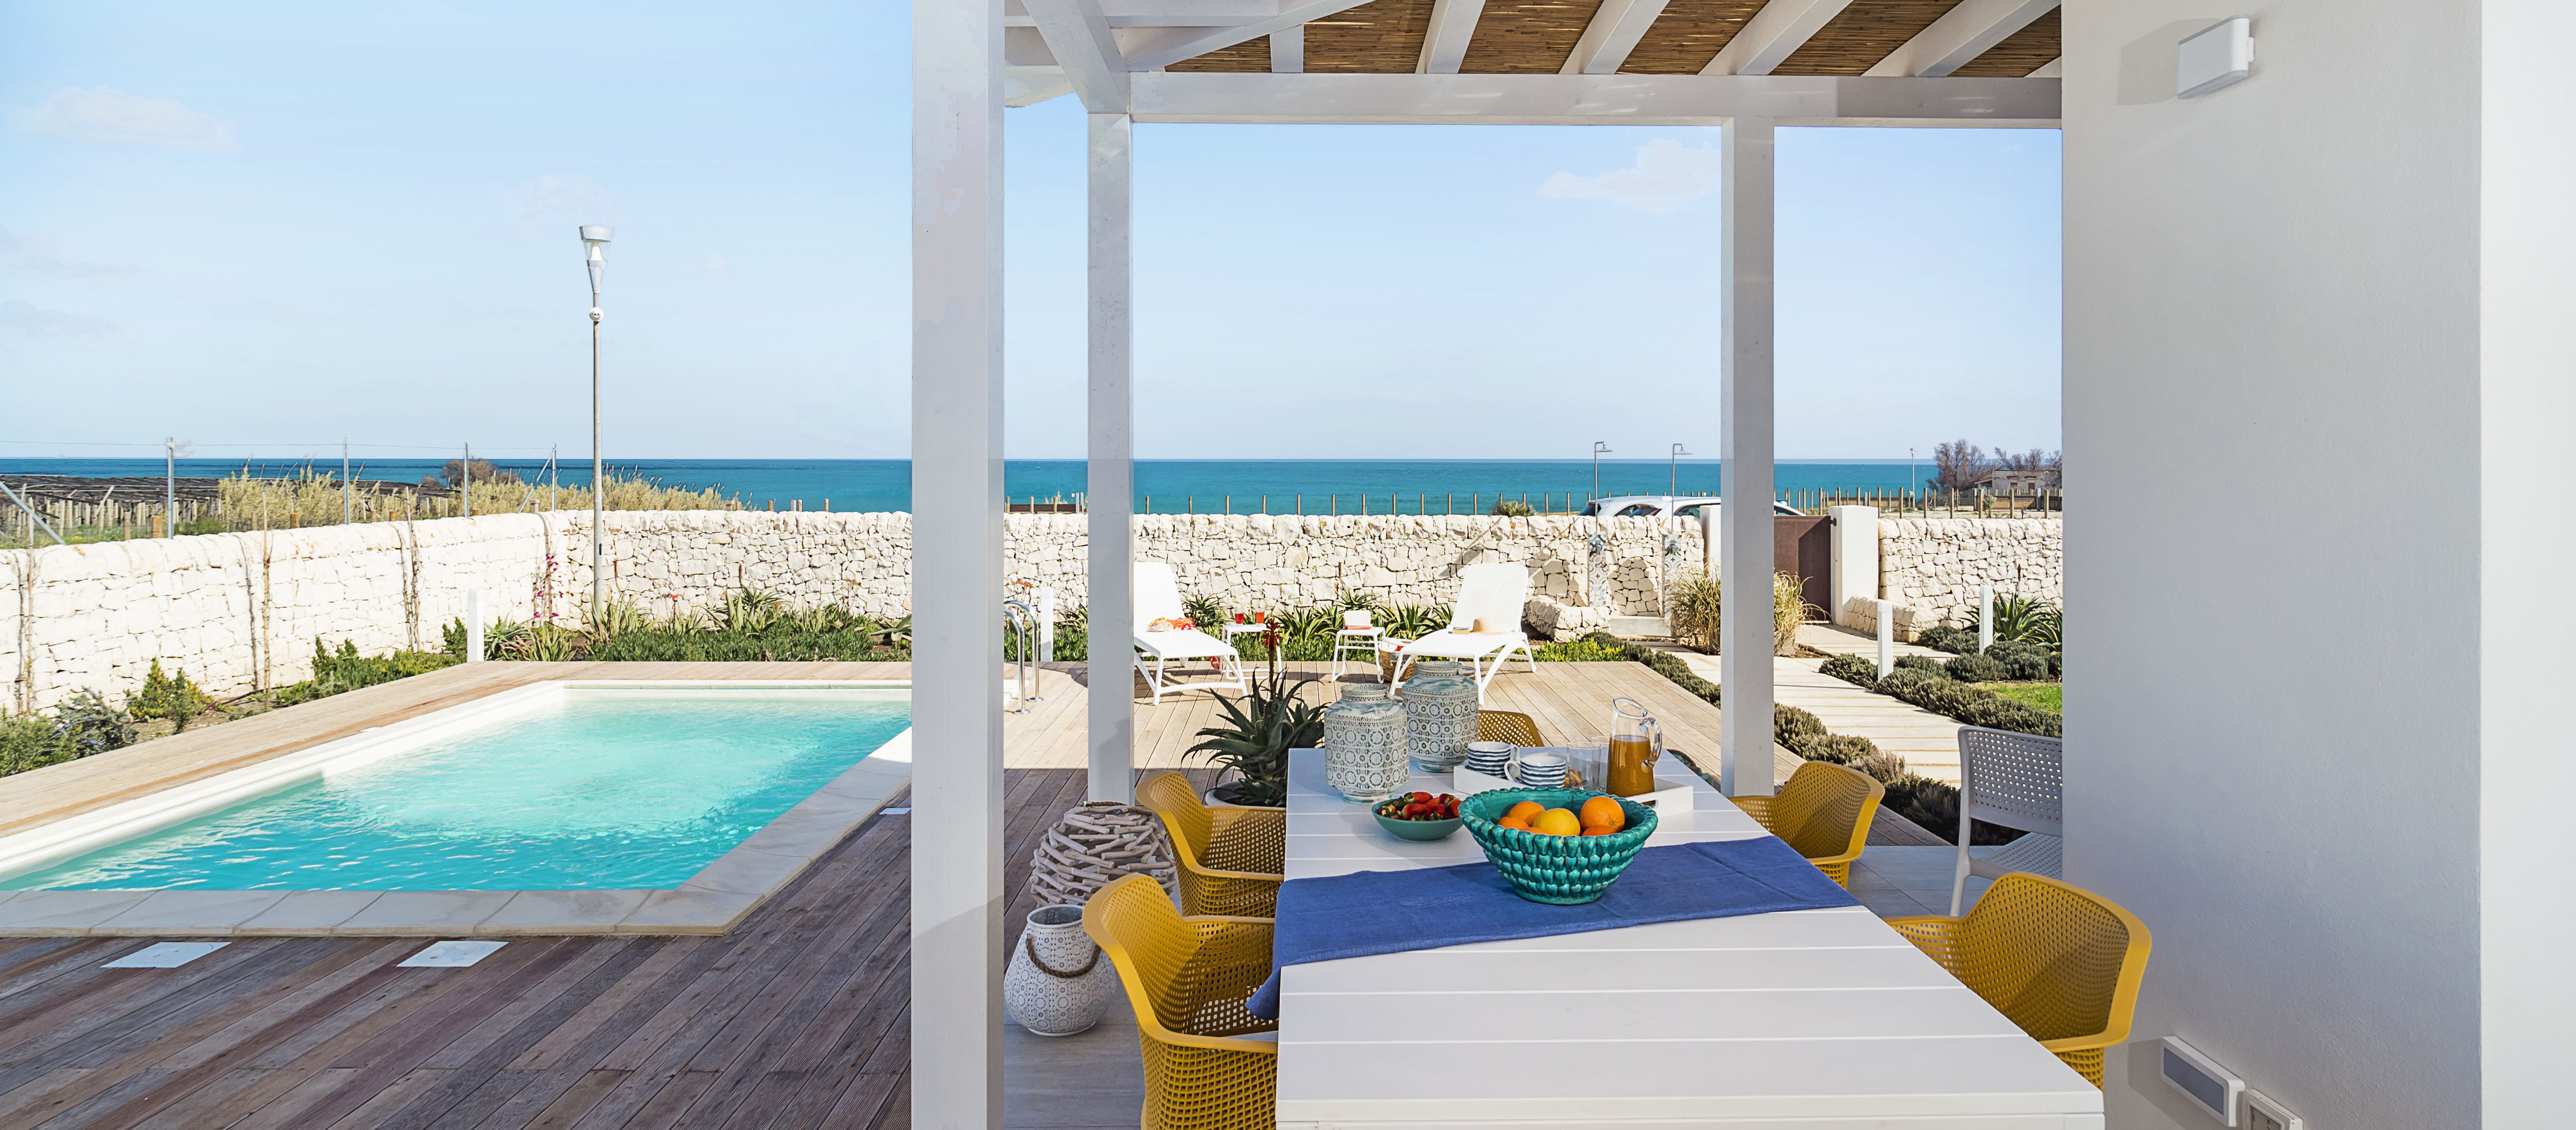 Sicily Villa Rental by the Sea with Pool in Marzamemi near Syracuse - 38